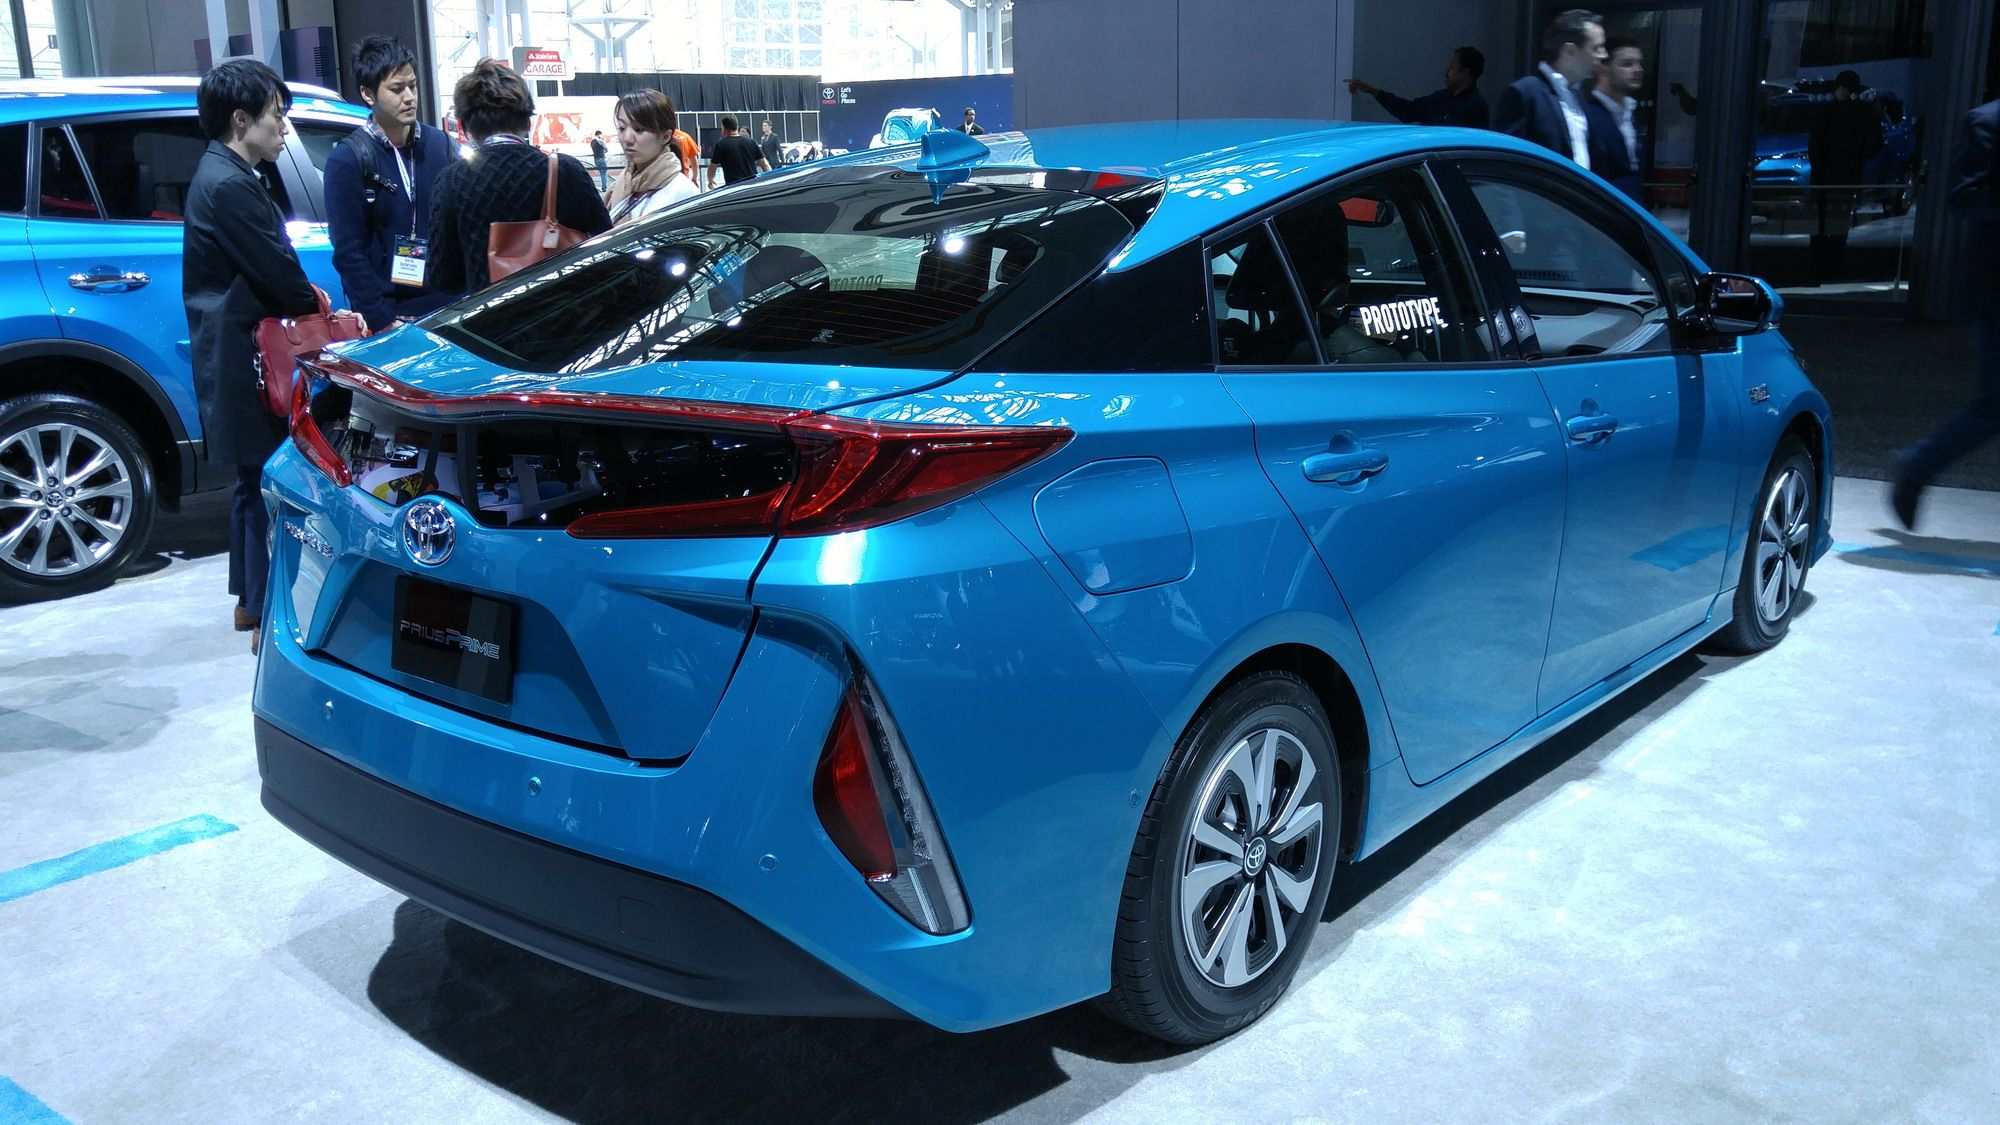 Pin By Wayne Gerdes On Automobiles Toyota Prius Toyota Automobile